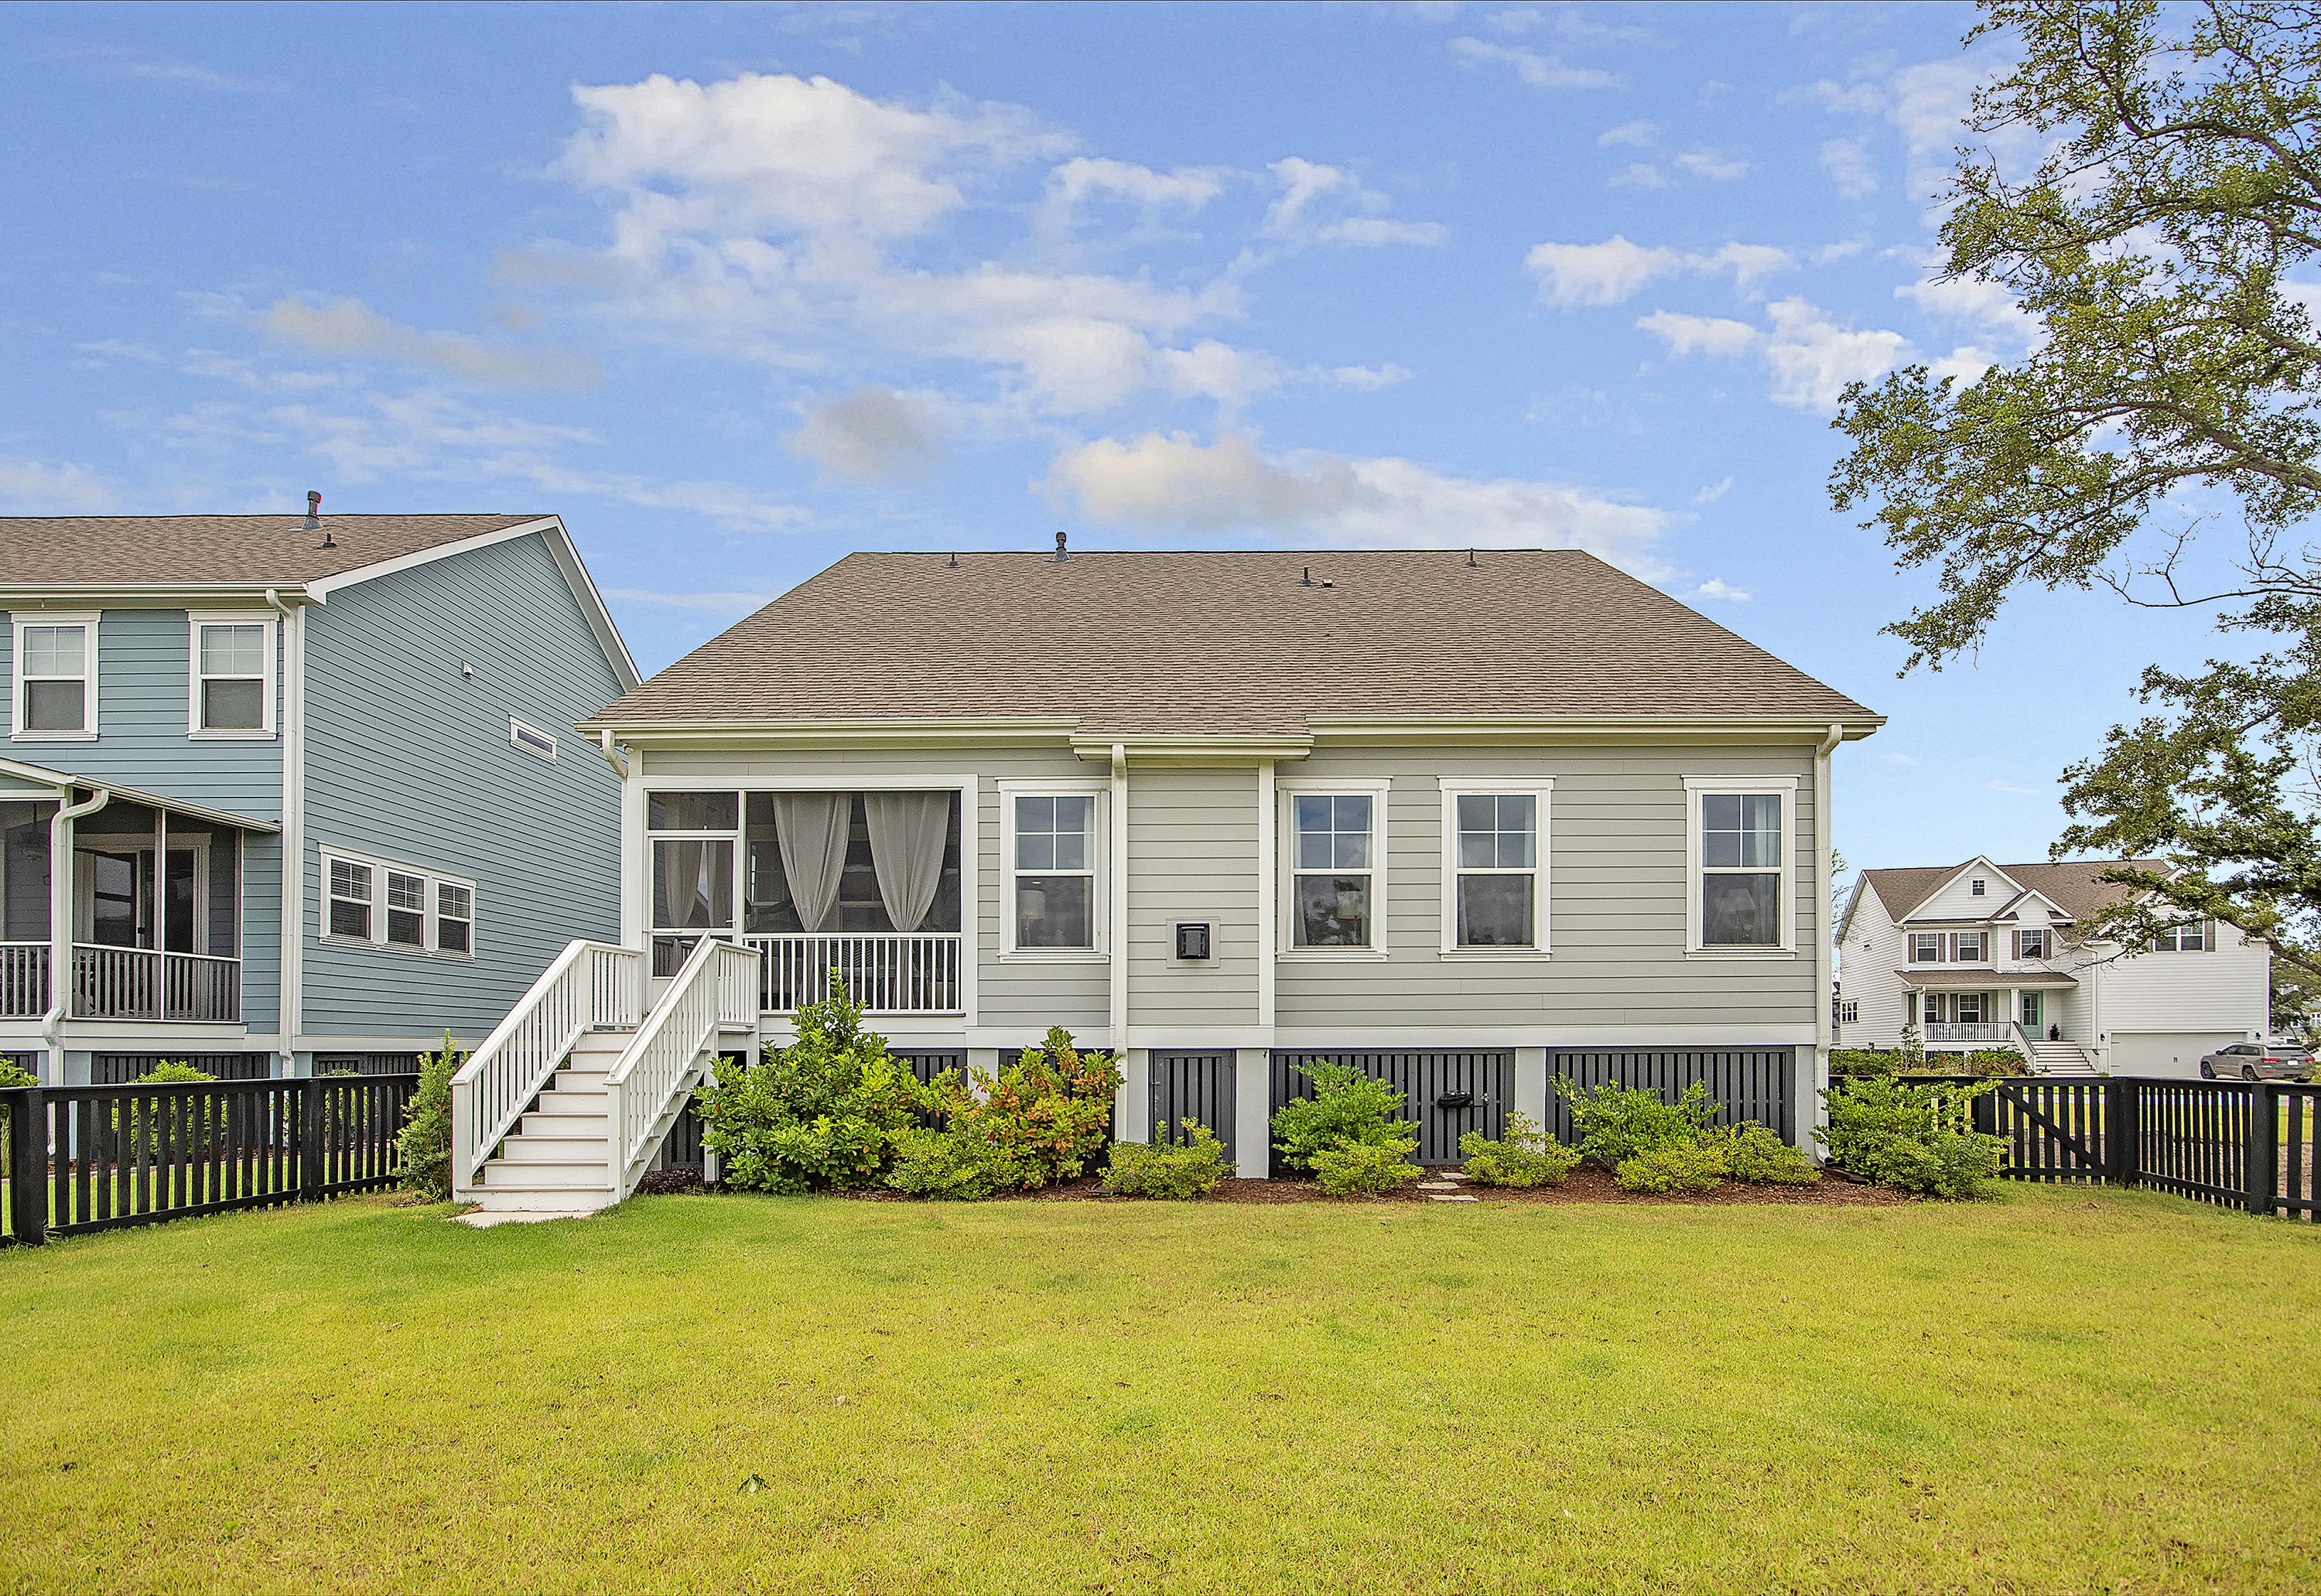 Oyster Point Homes For Sale - 2186 Midden, Mount Pleasant, SC - 24